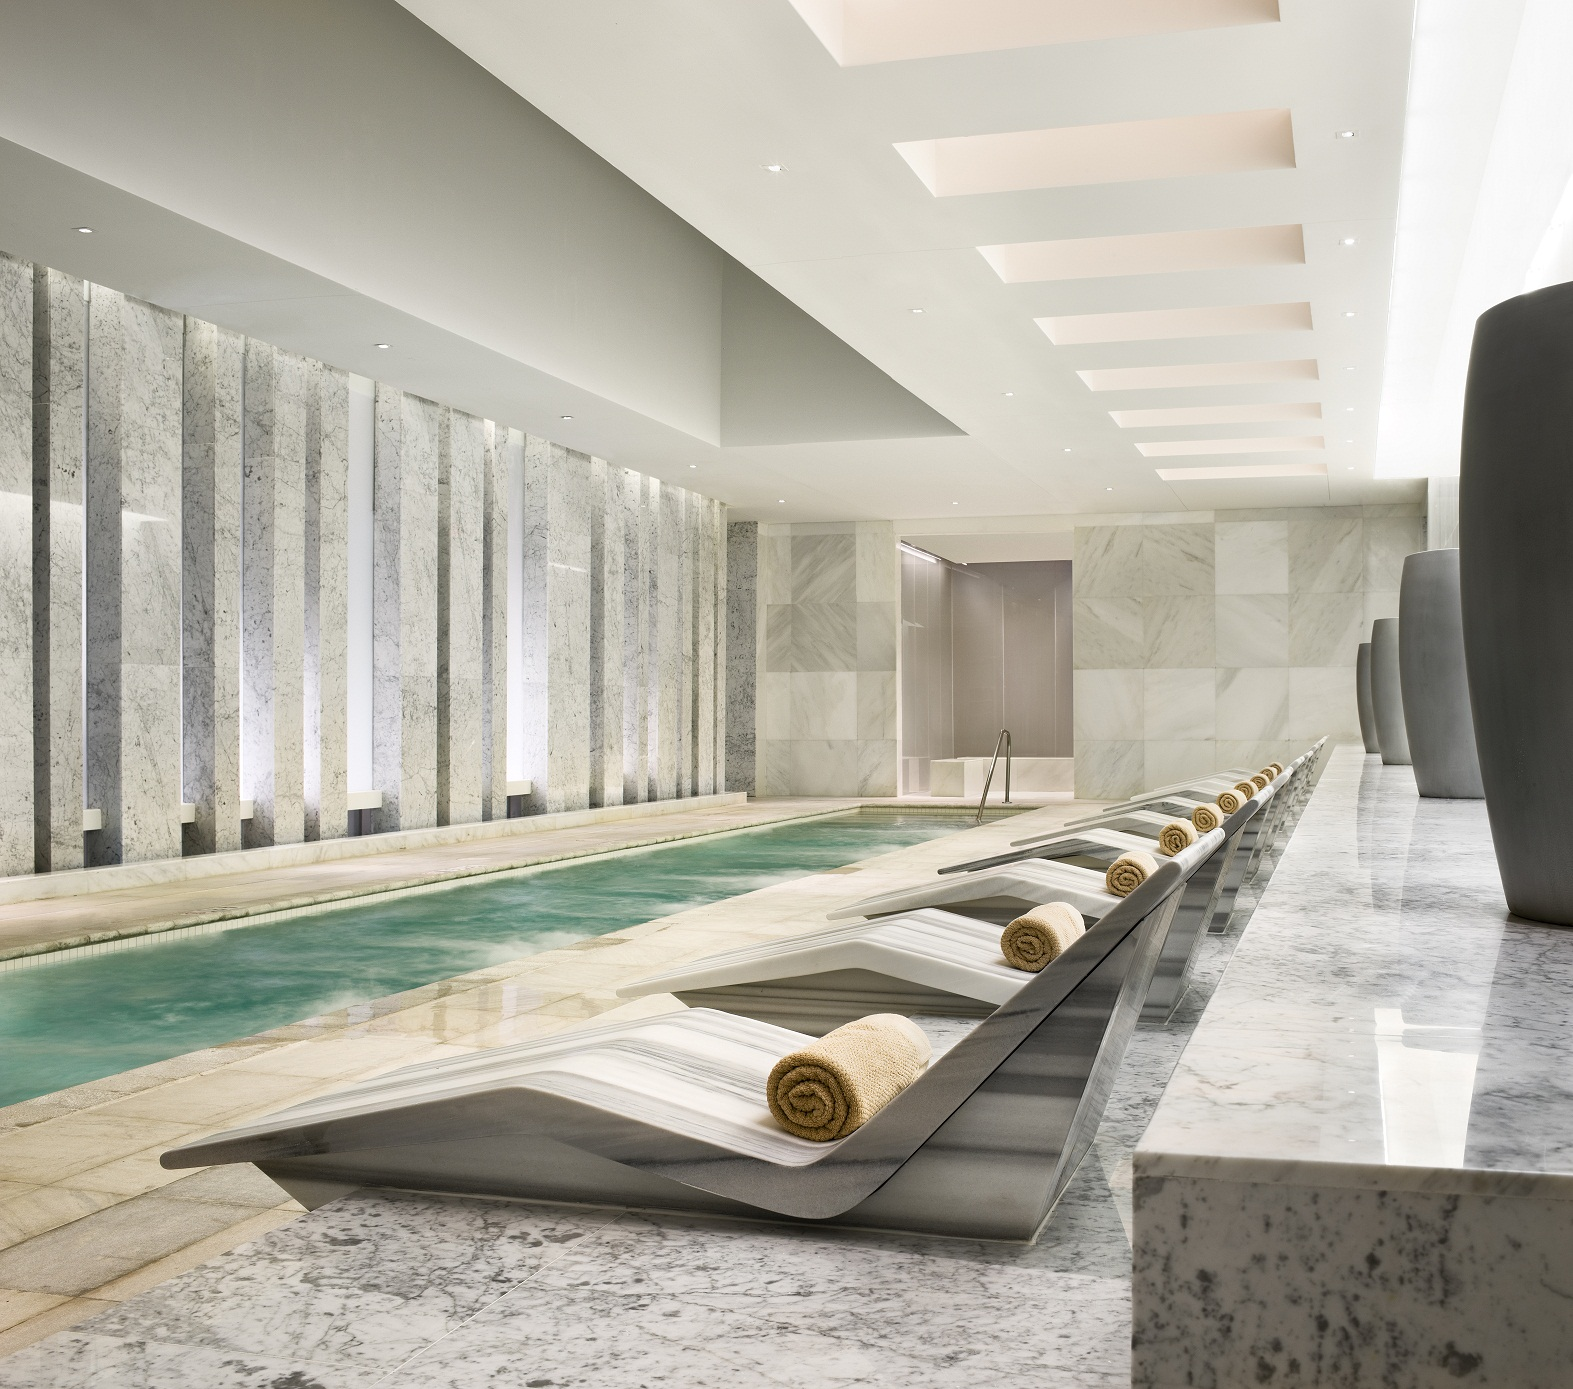 Home spa recipes from the fontainebleau spa director for Best health spas in the us